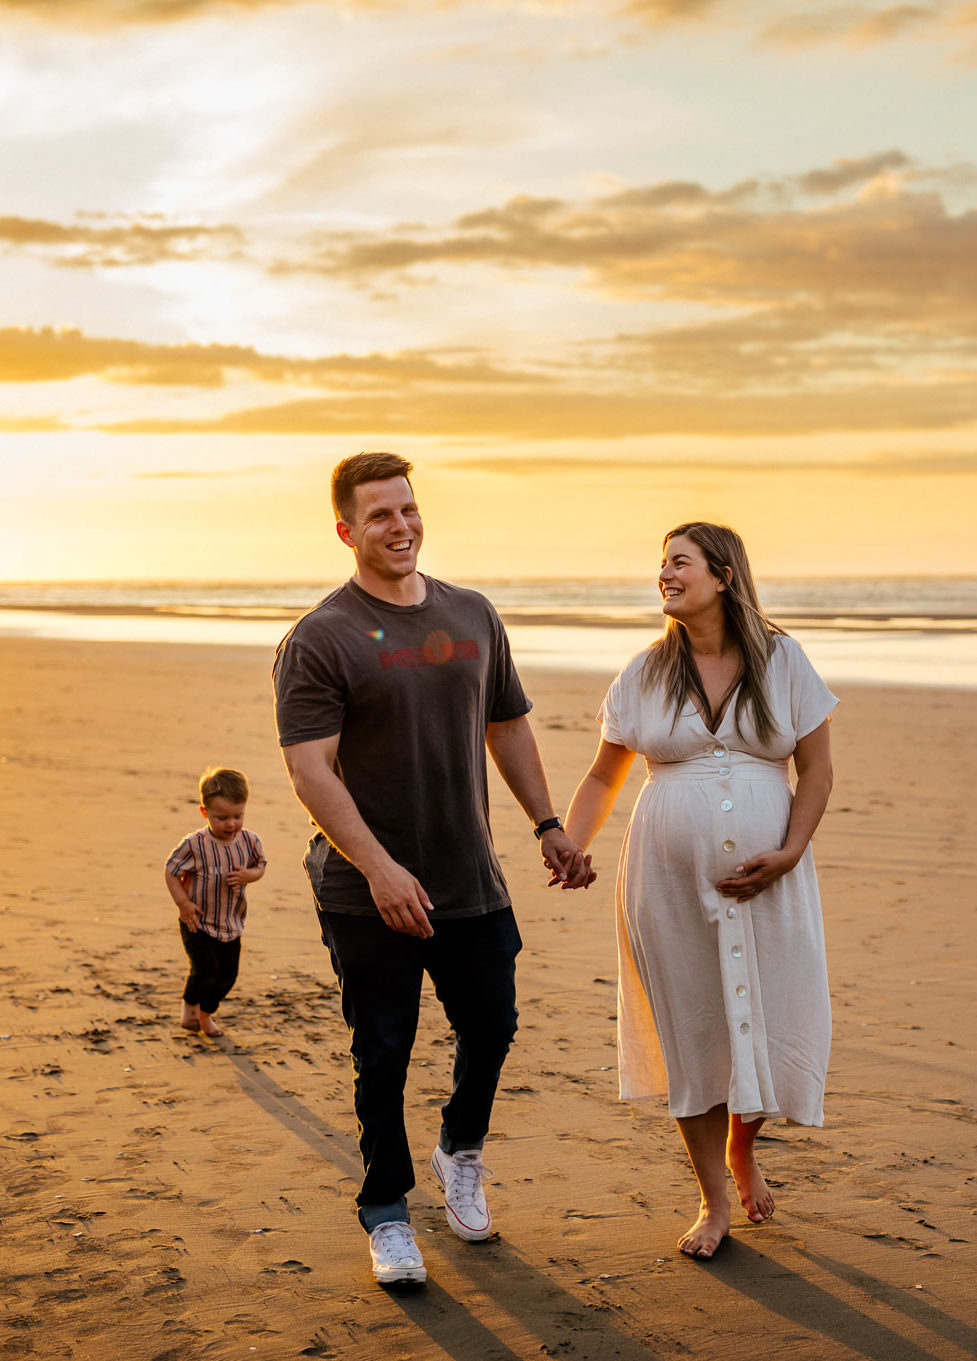 Family at the beach during sunset having maternity photos taken by Shan Radford